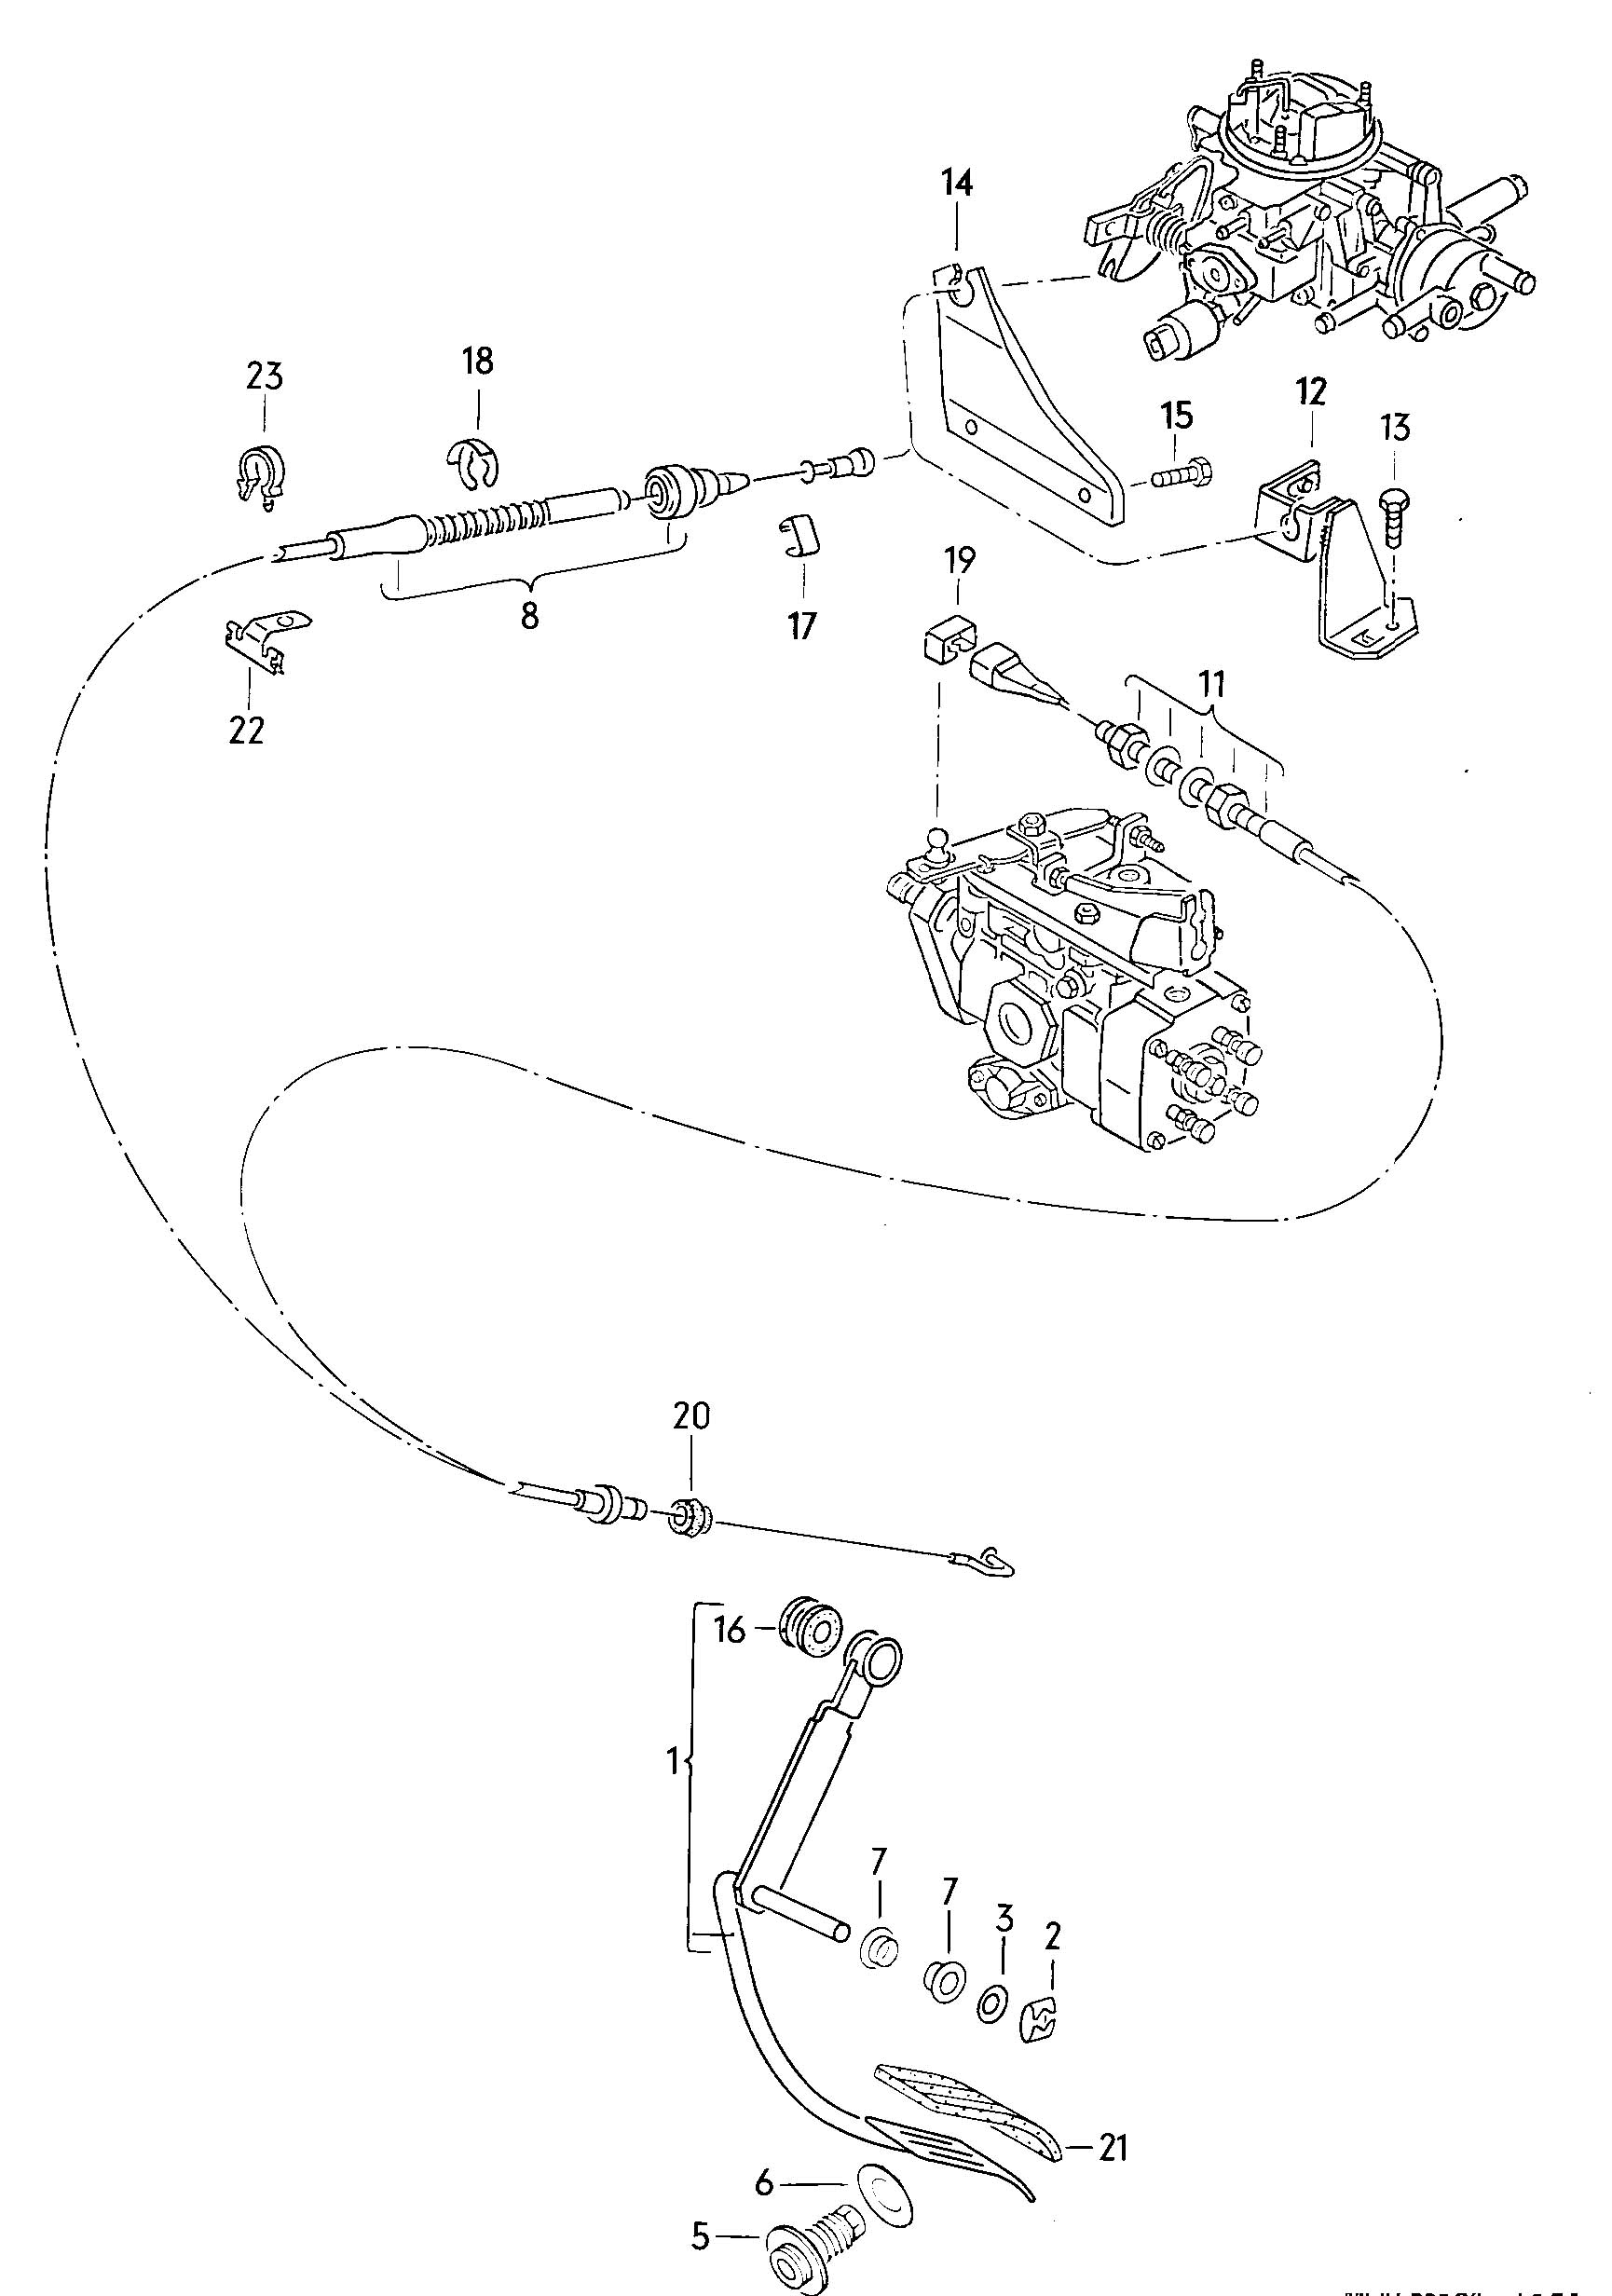 Chevrolet Tracker Timing Chain Alignment Show Marks